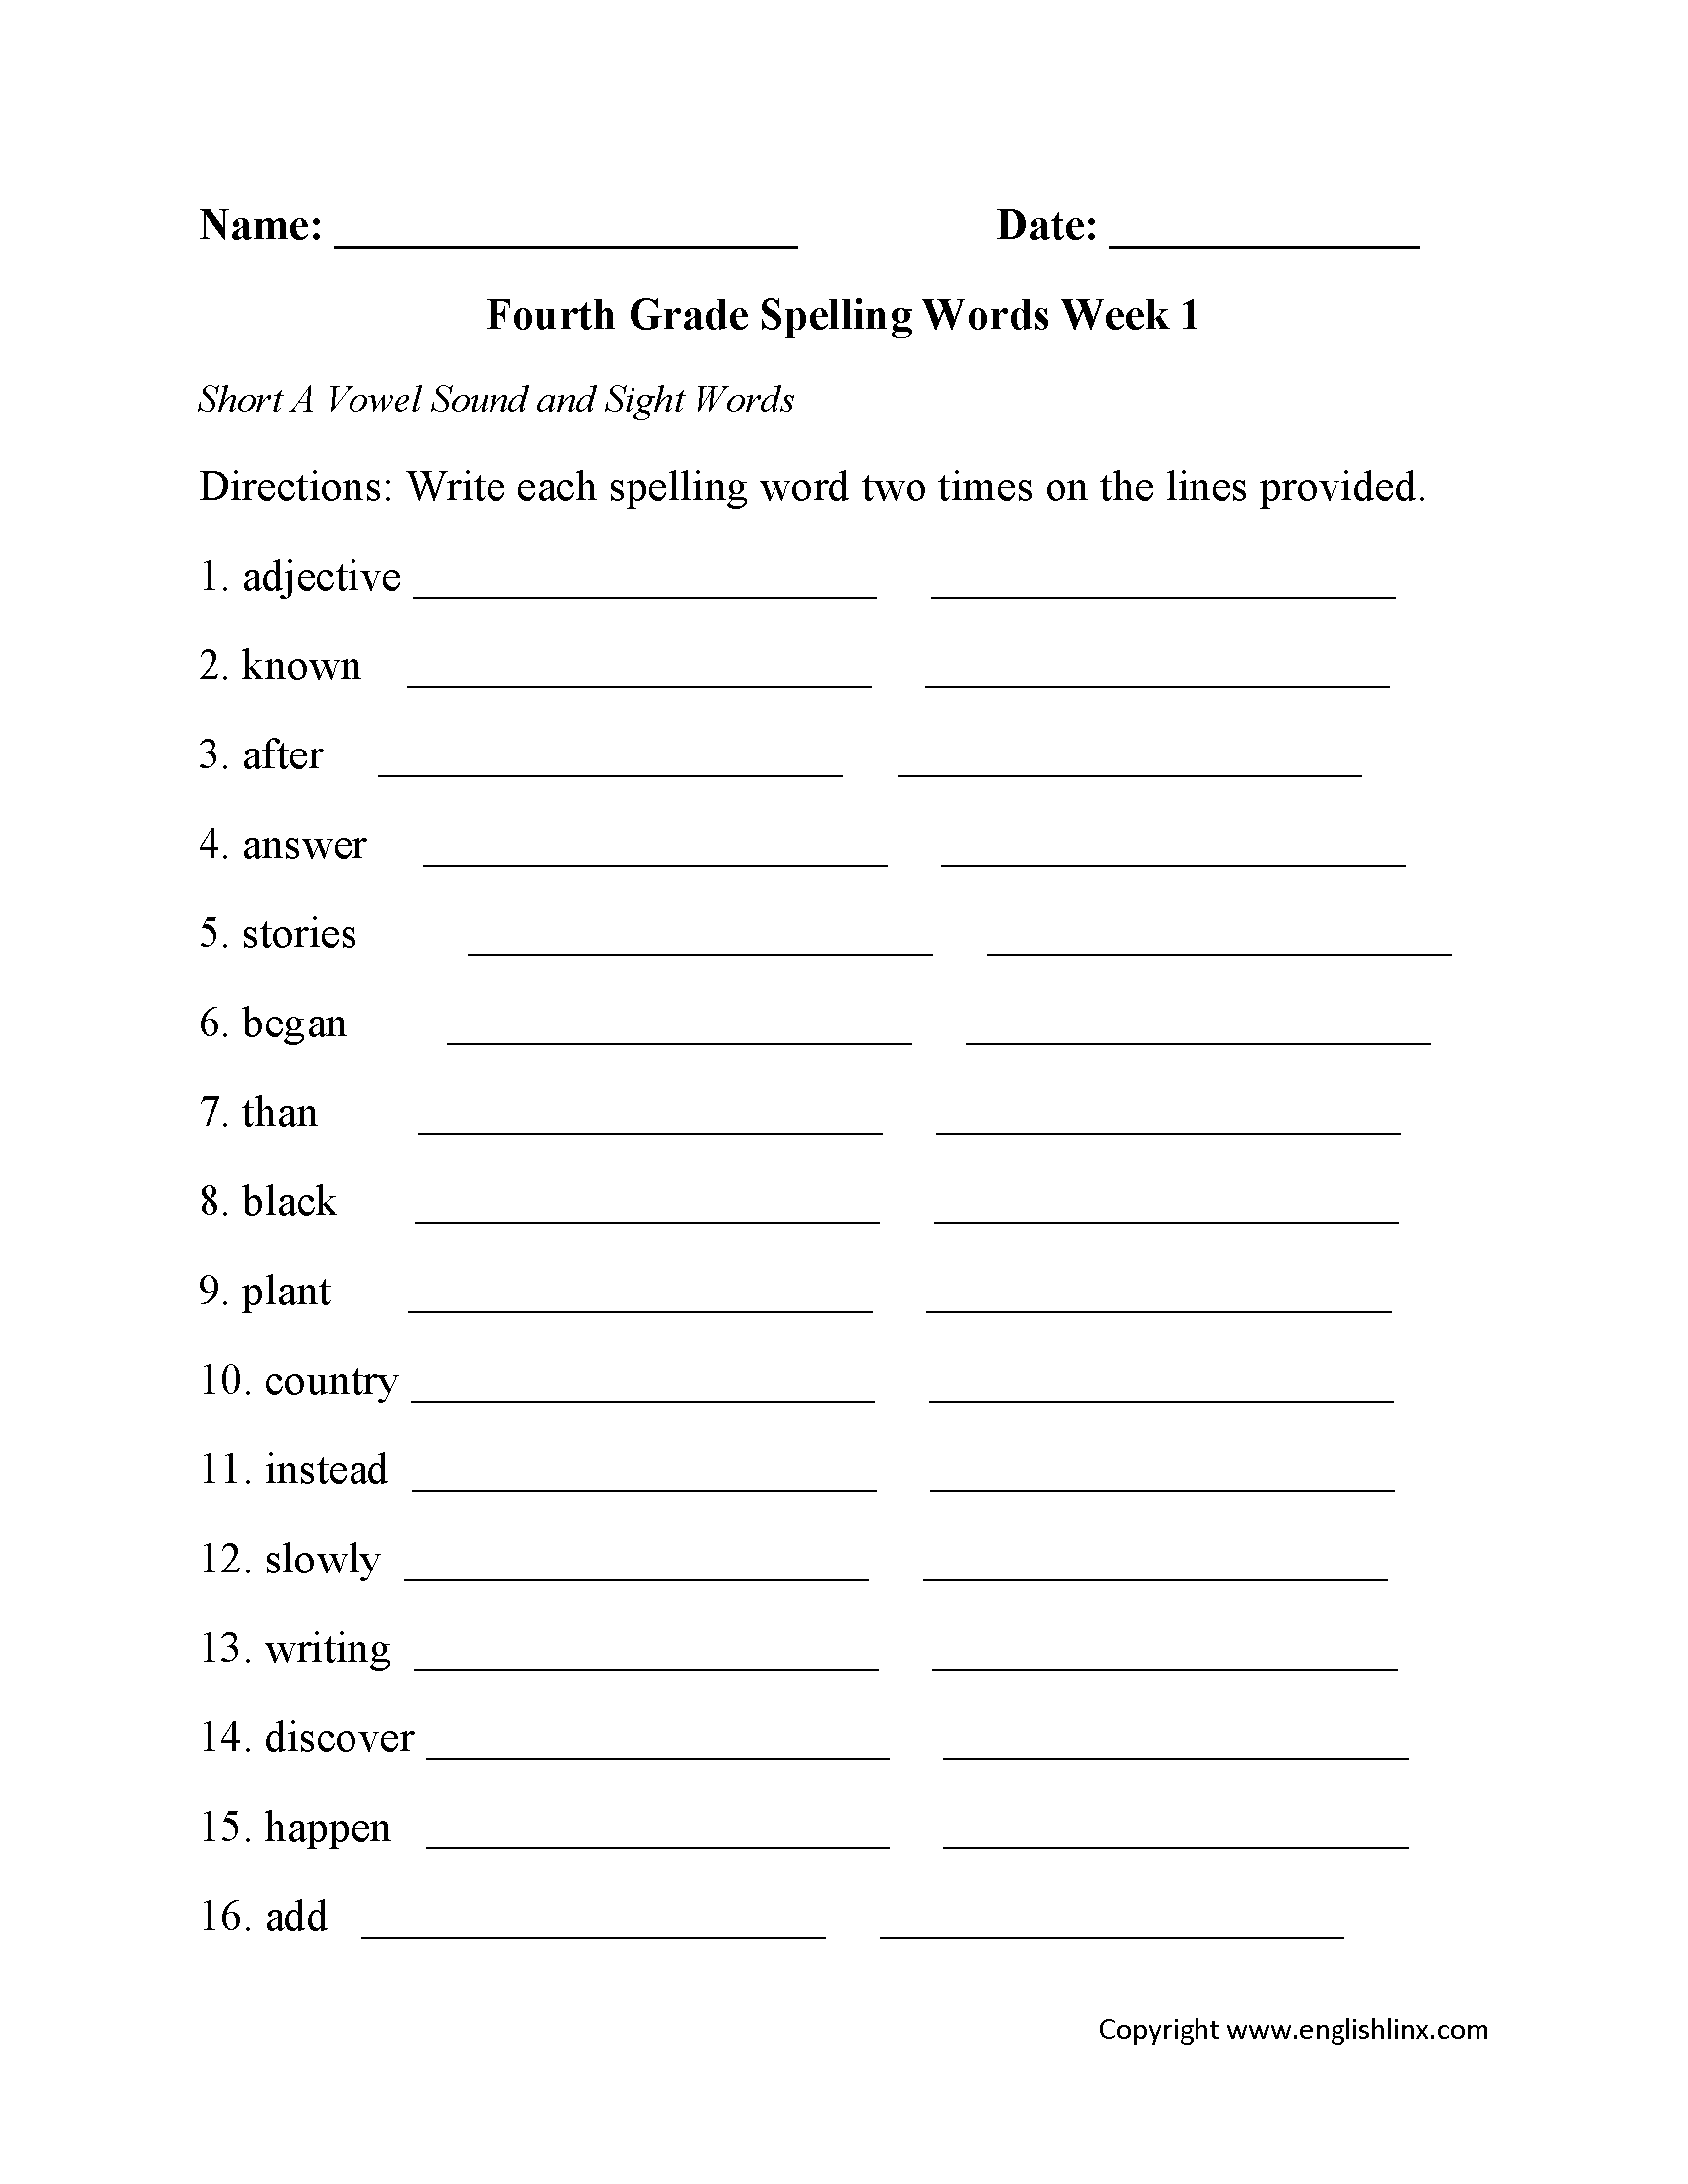 Worksheets Spelling Worksheets 4th Grade spelling worksheets fourth grade worksheets